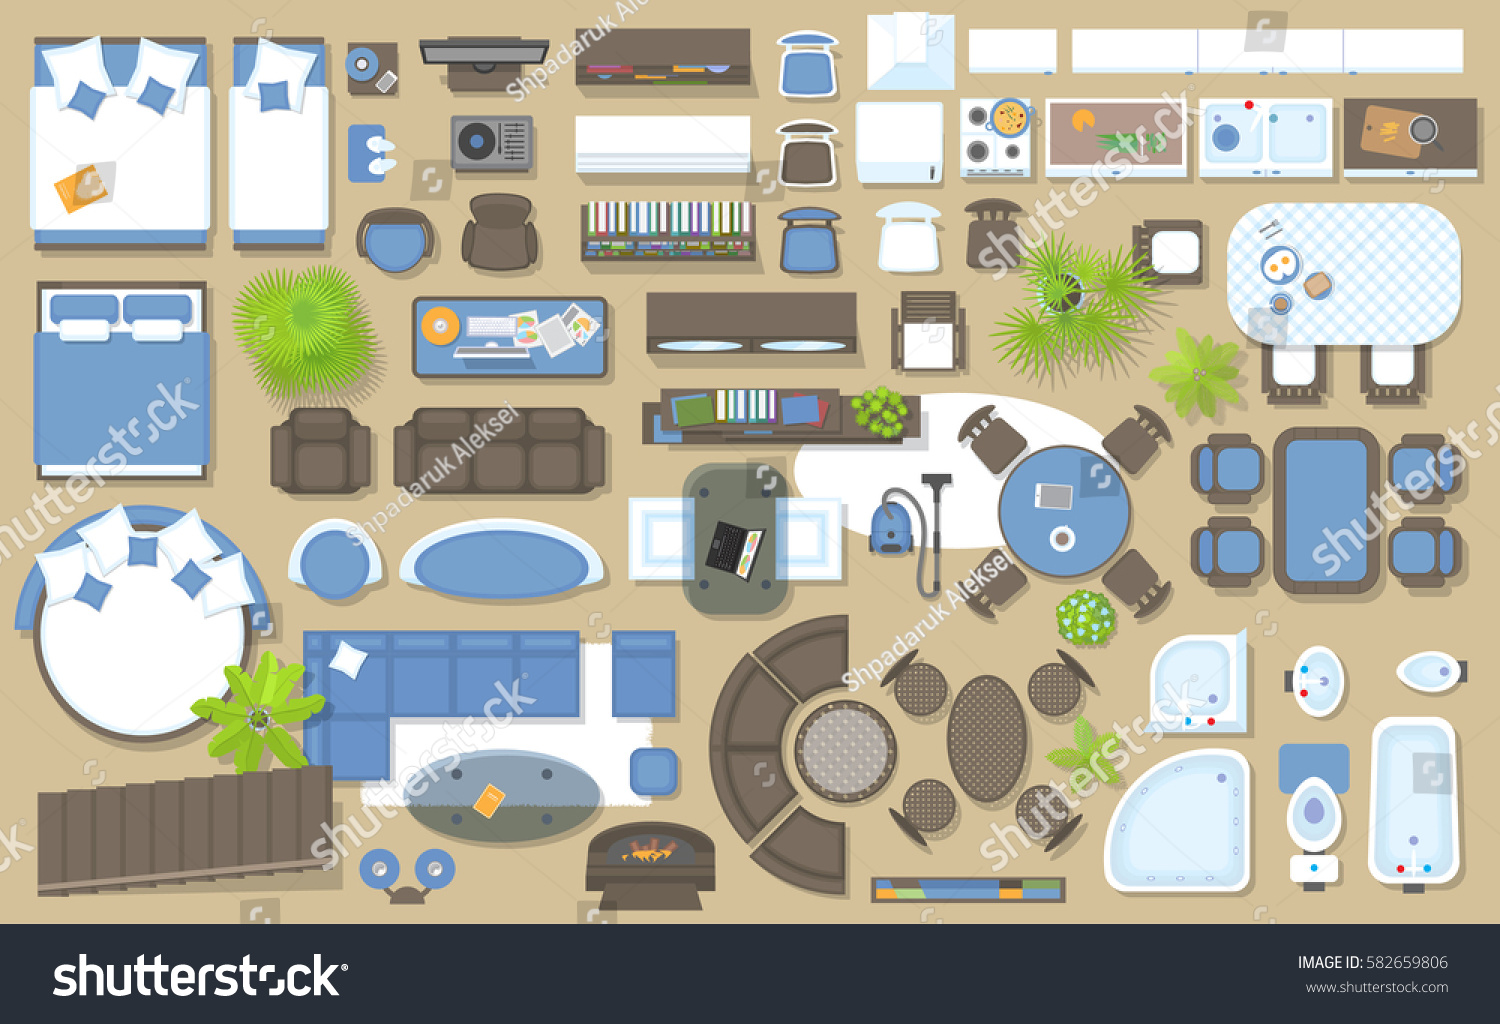 Icons set interior top view isolated stock vector for Room design elements